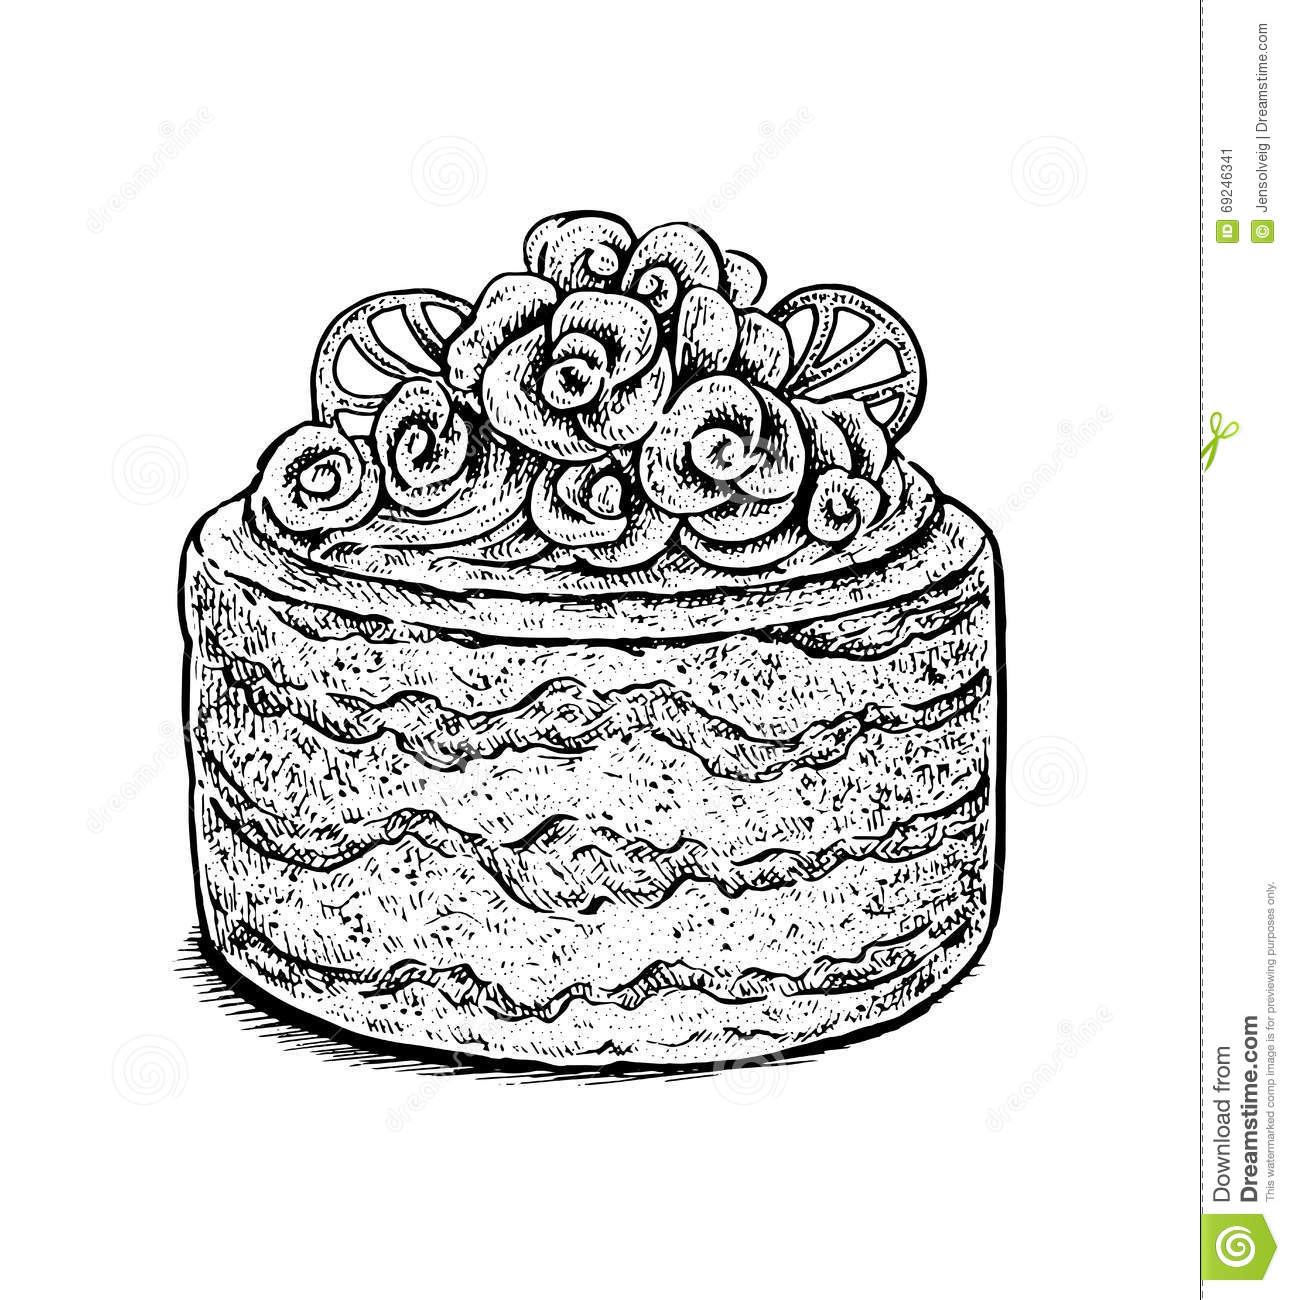 Cake Line Art Vector Free Download : Black And White Hand Drawn Vector Illustration Of A Creamy ...